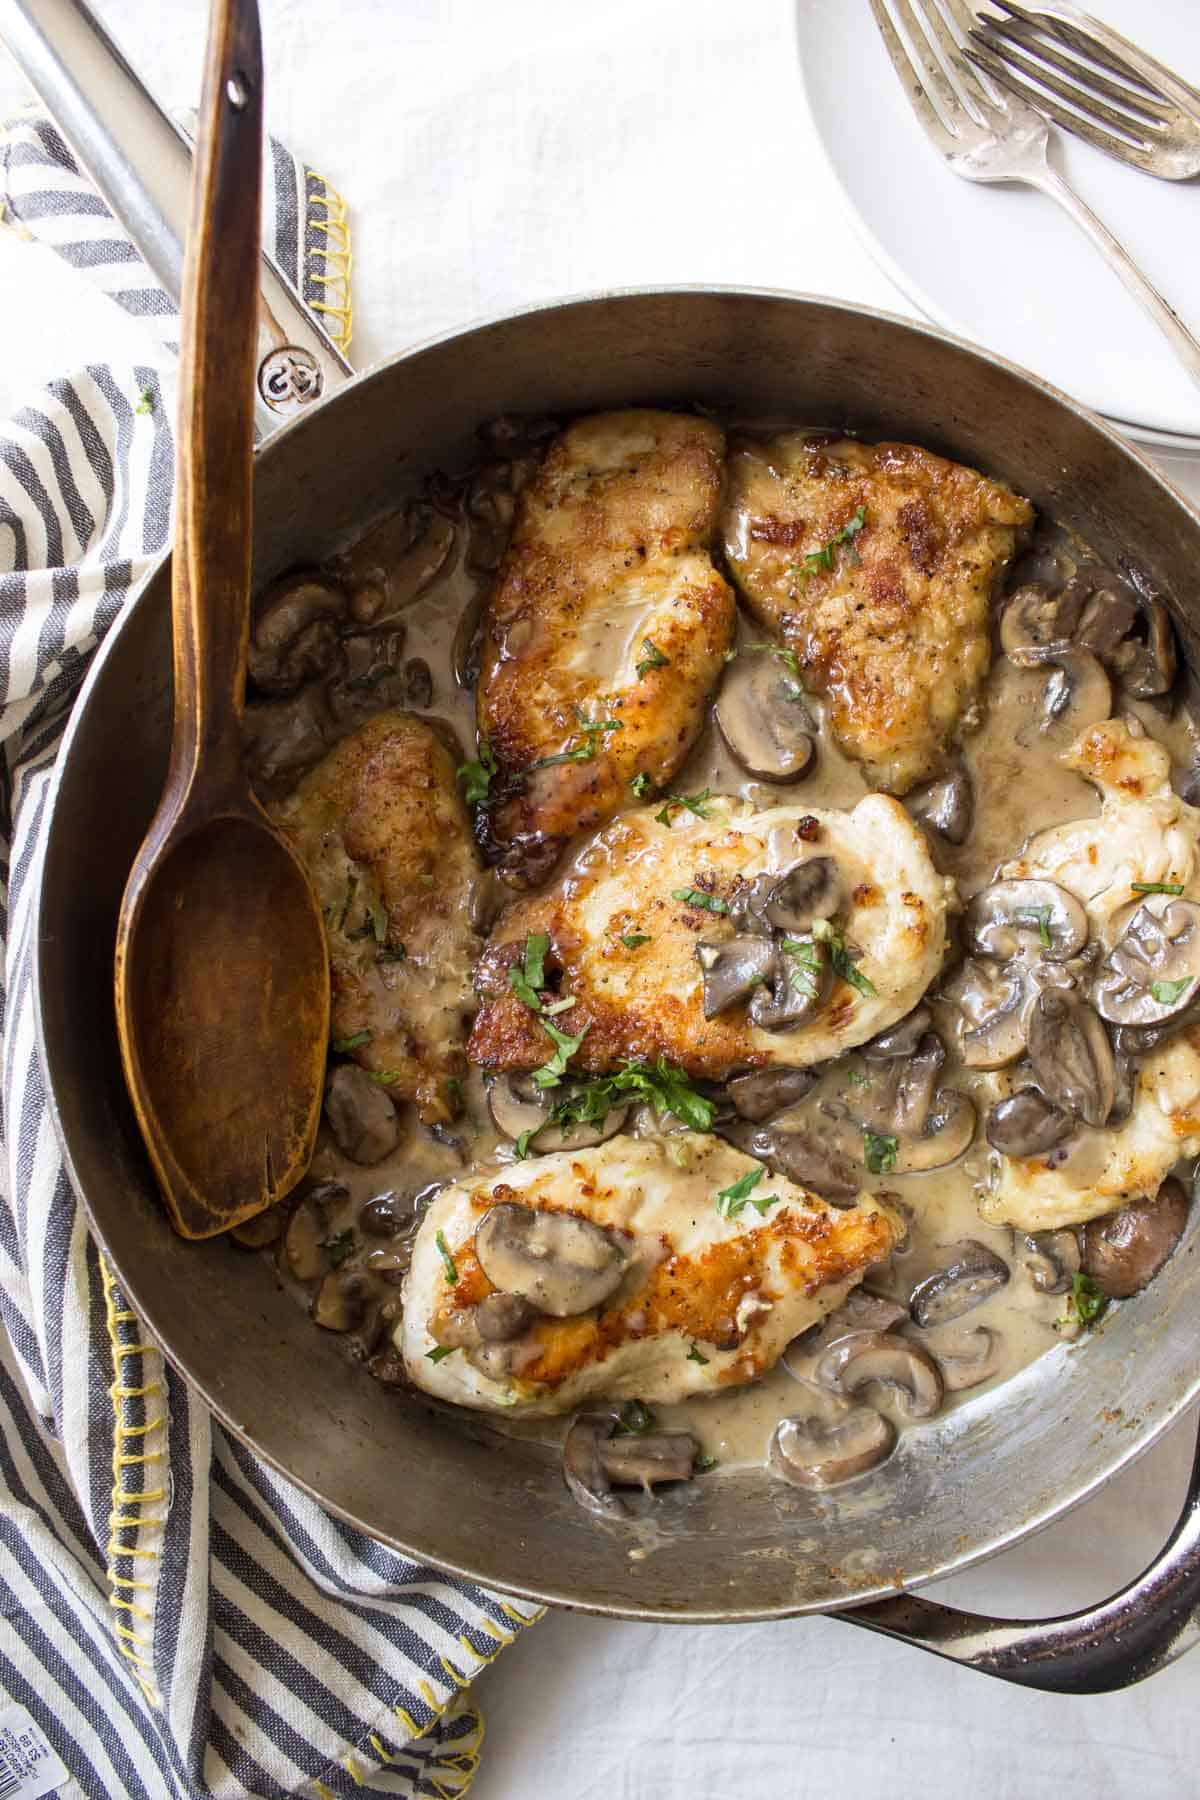 Dairy Free Creamy Mushroom Chicken Skillet finished meal